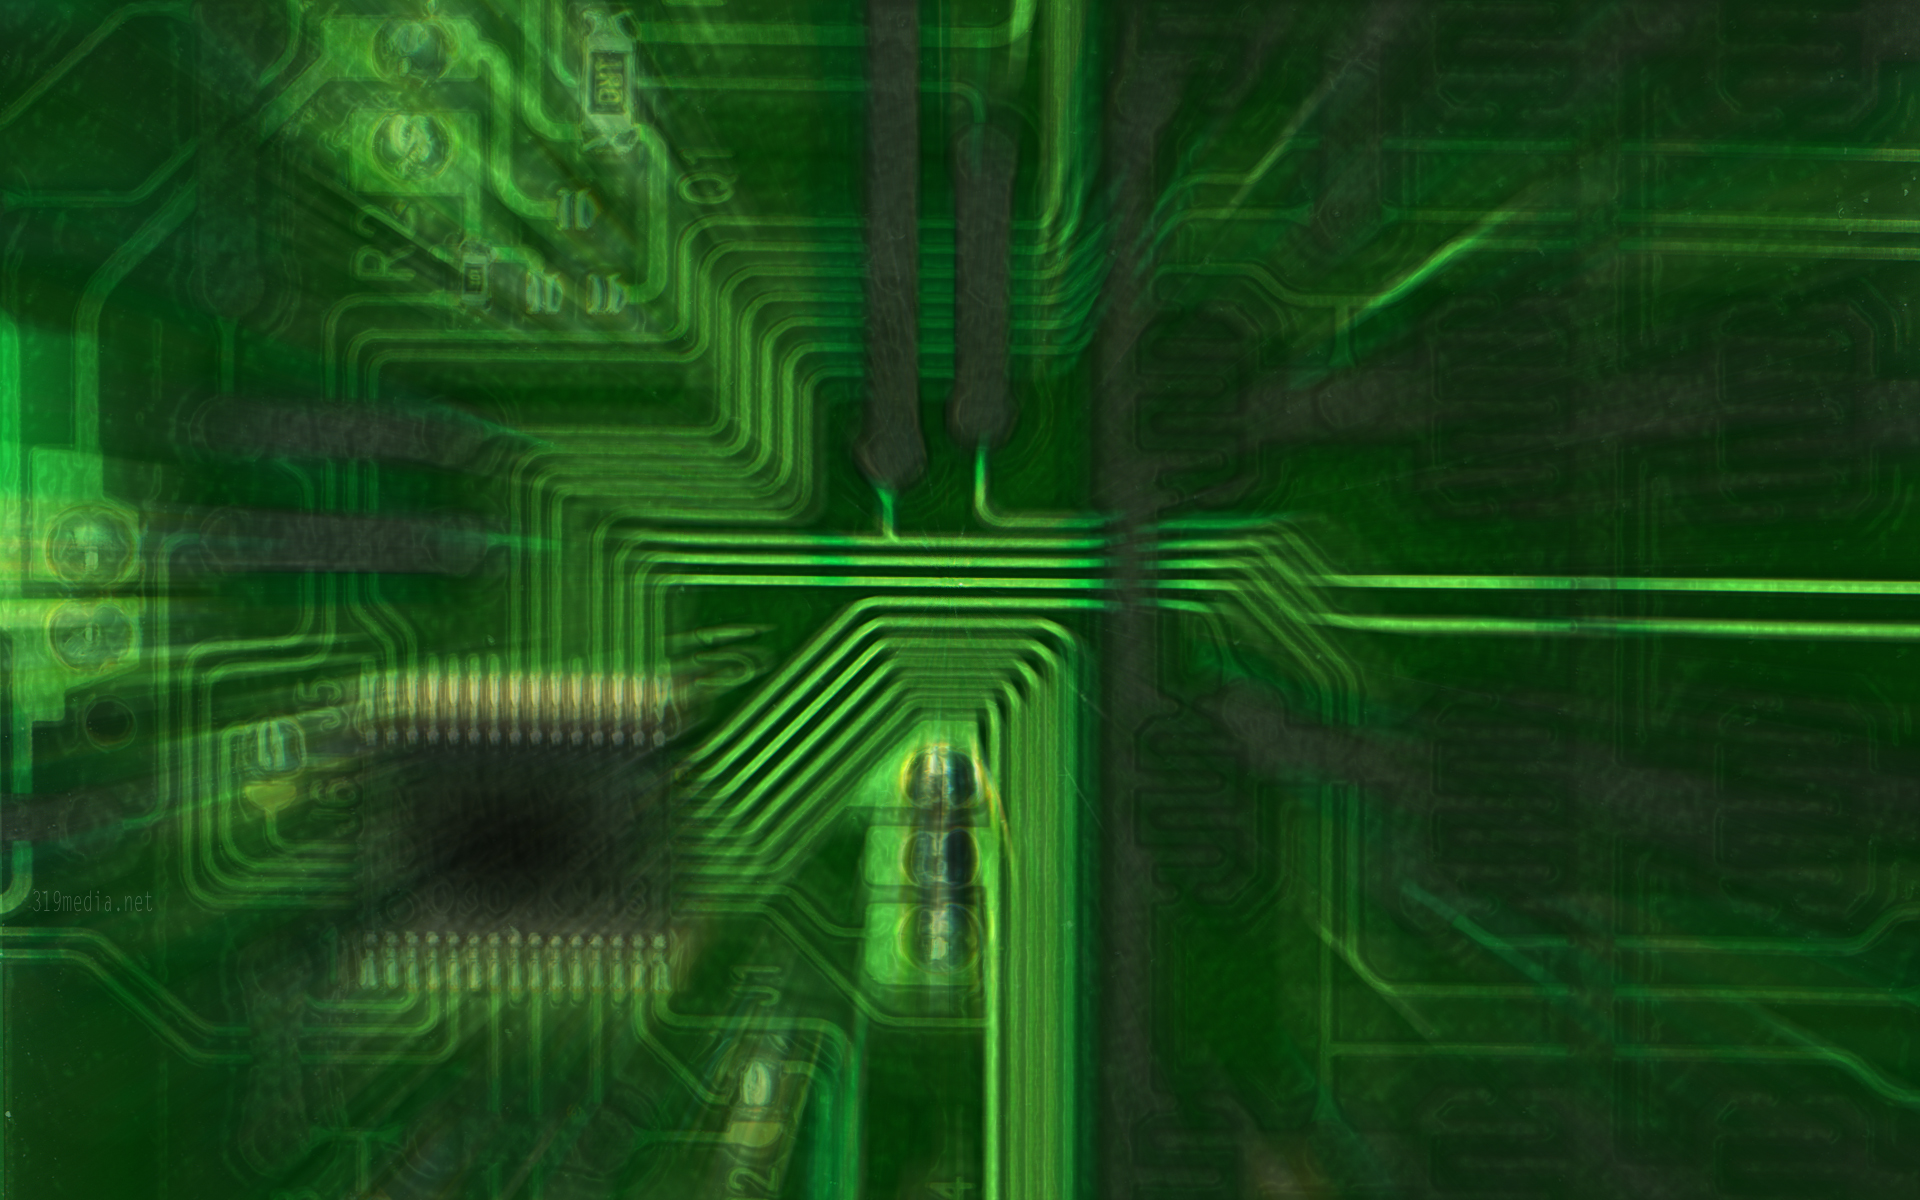 Green Technology Wallpaper: Zoom PCB Full HD Wallpaper And Background Image